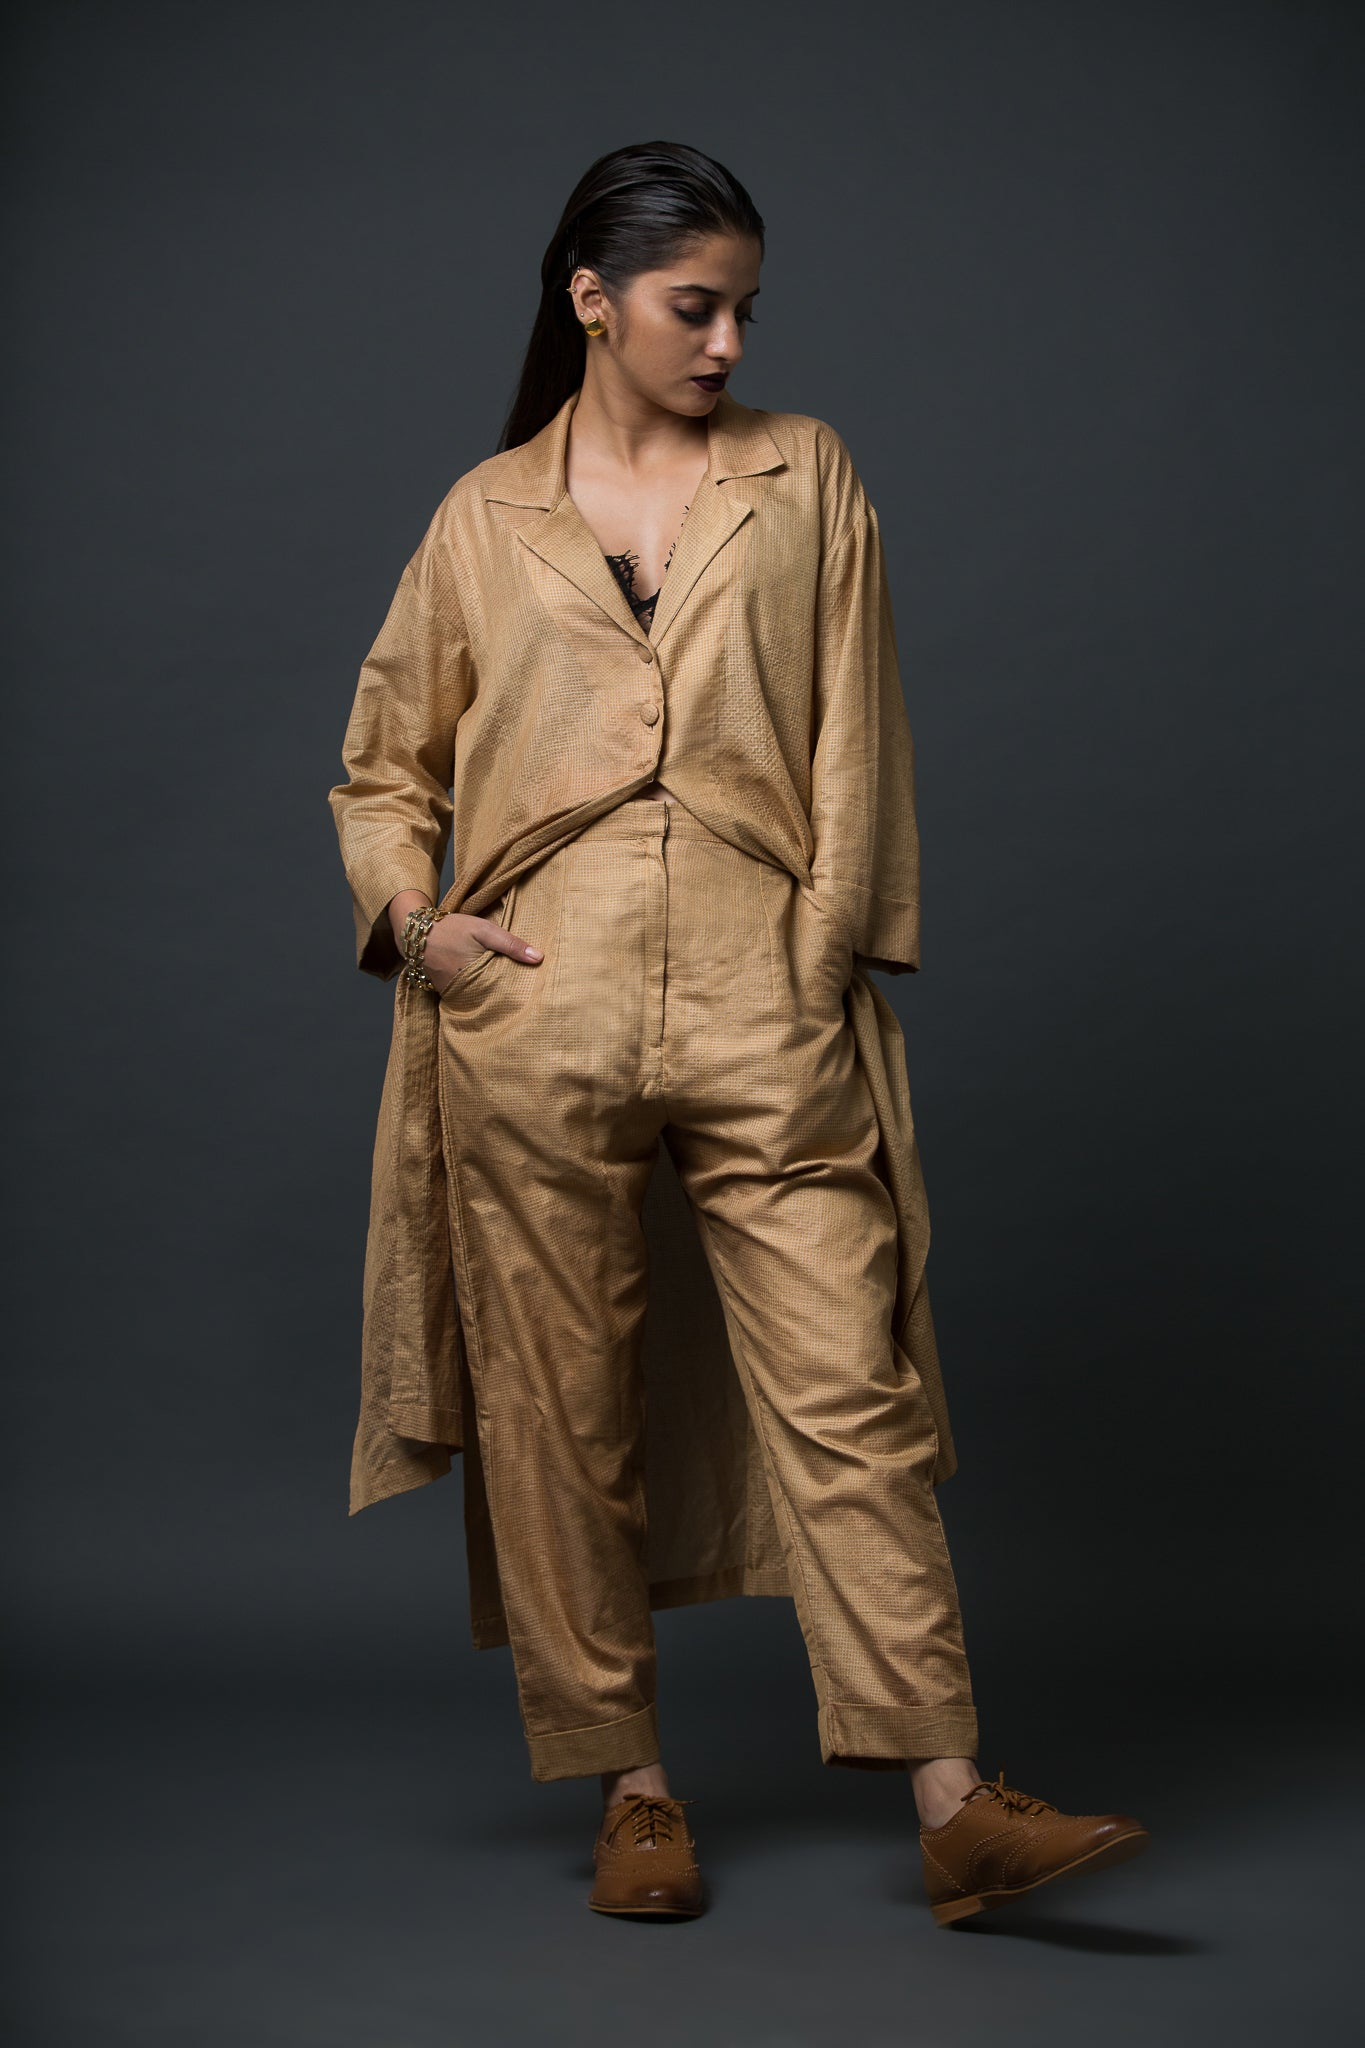 Charlotte - Tone-on-tone tunic jacket and peg trousers